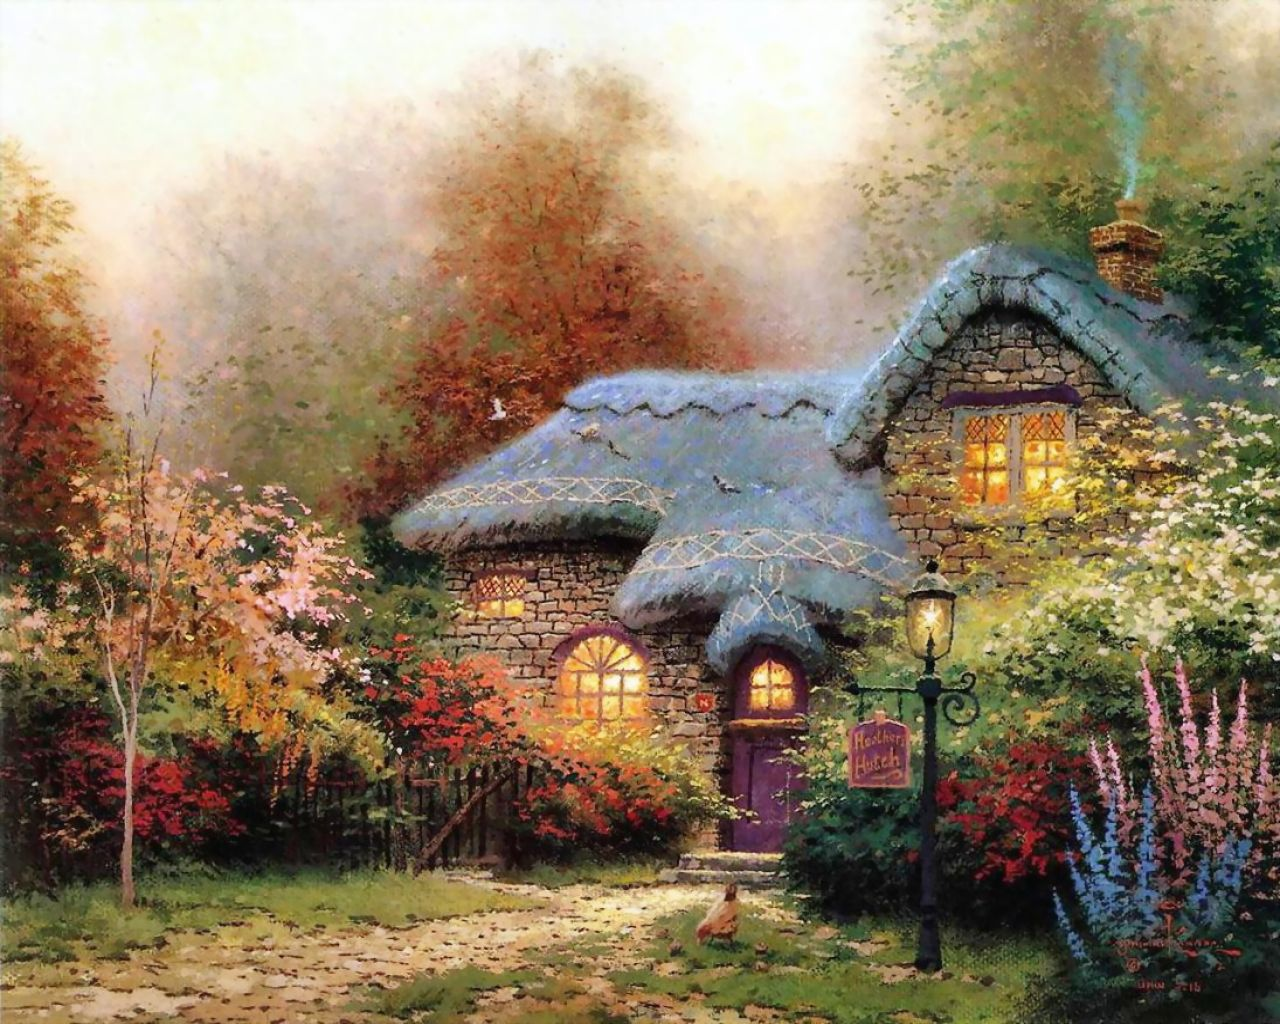 Experimental Theology The Thomas Kinkade Effect